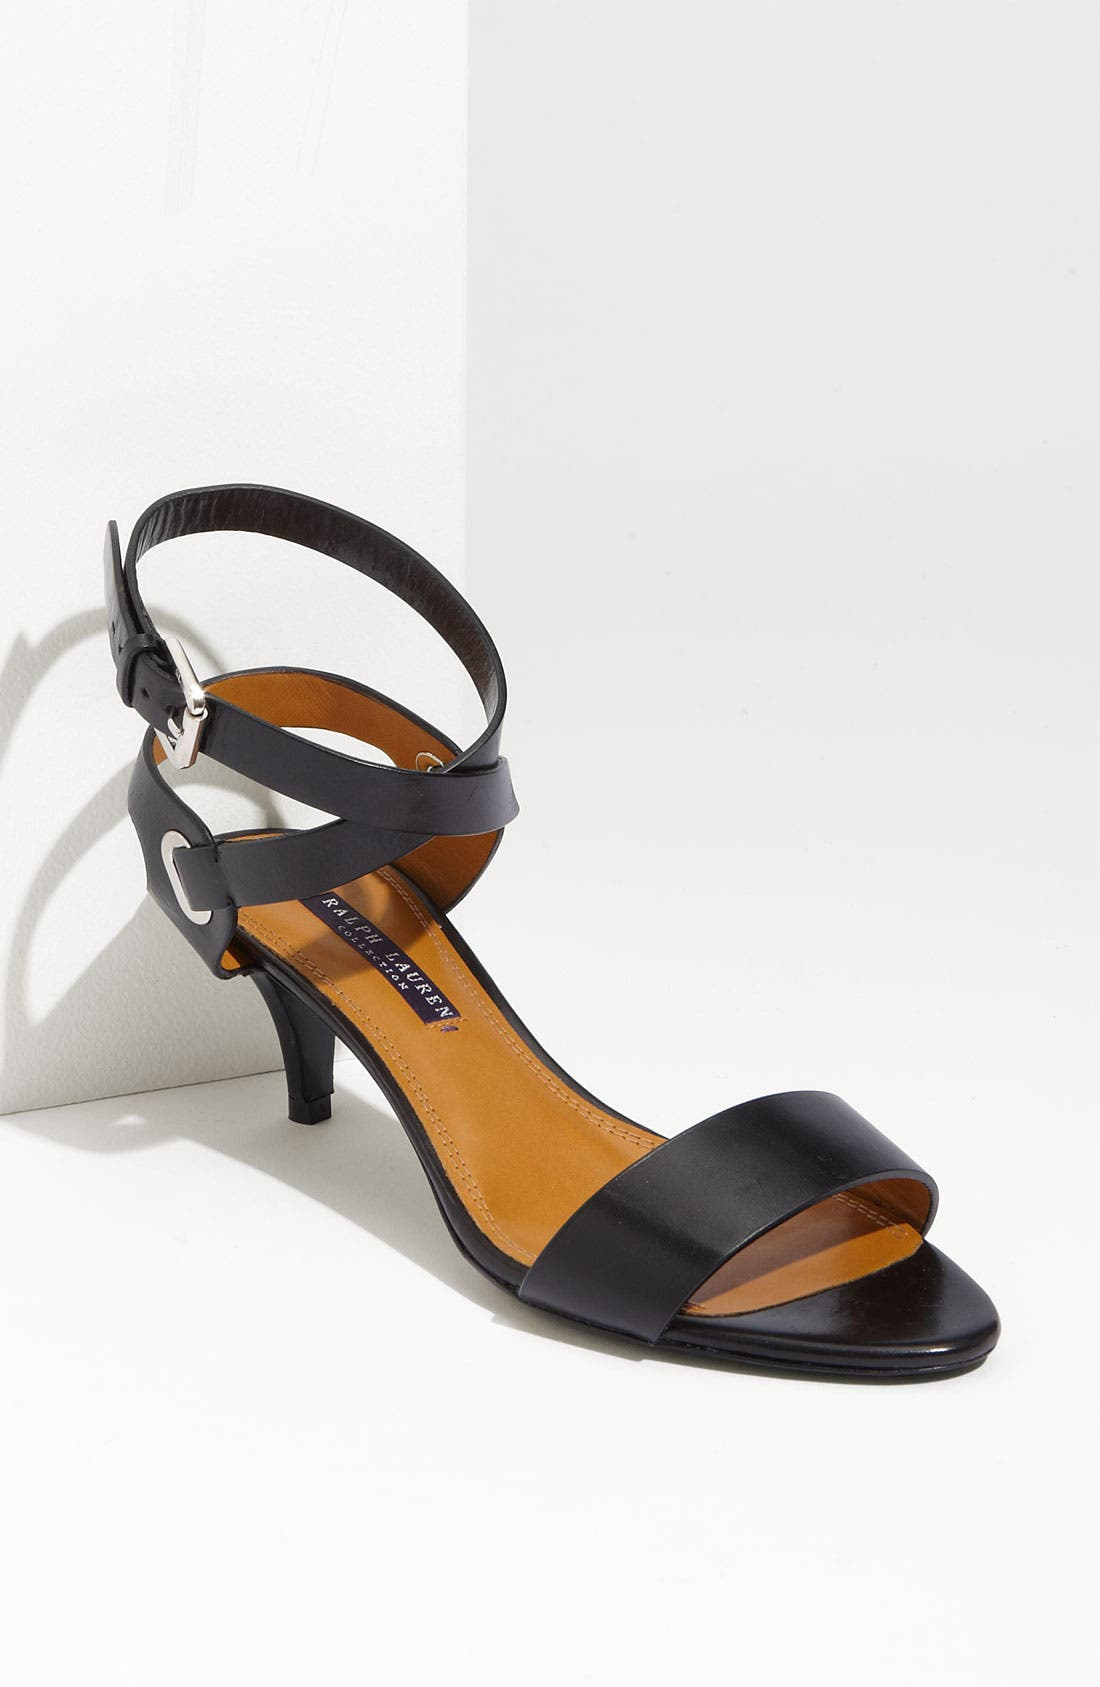 Alternate Image 1 Selected - Ralph Lauren Collection 'Inez' Sandal